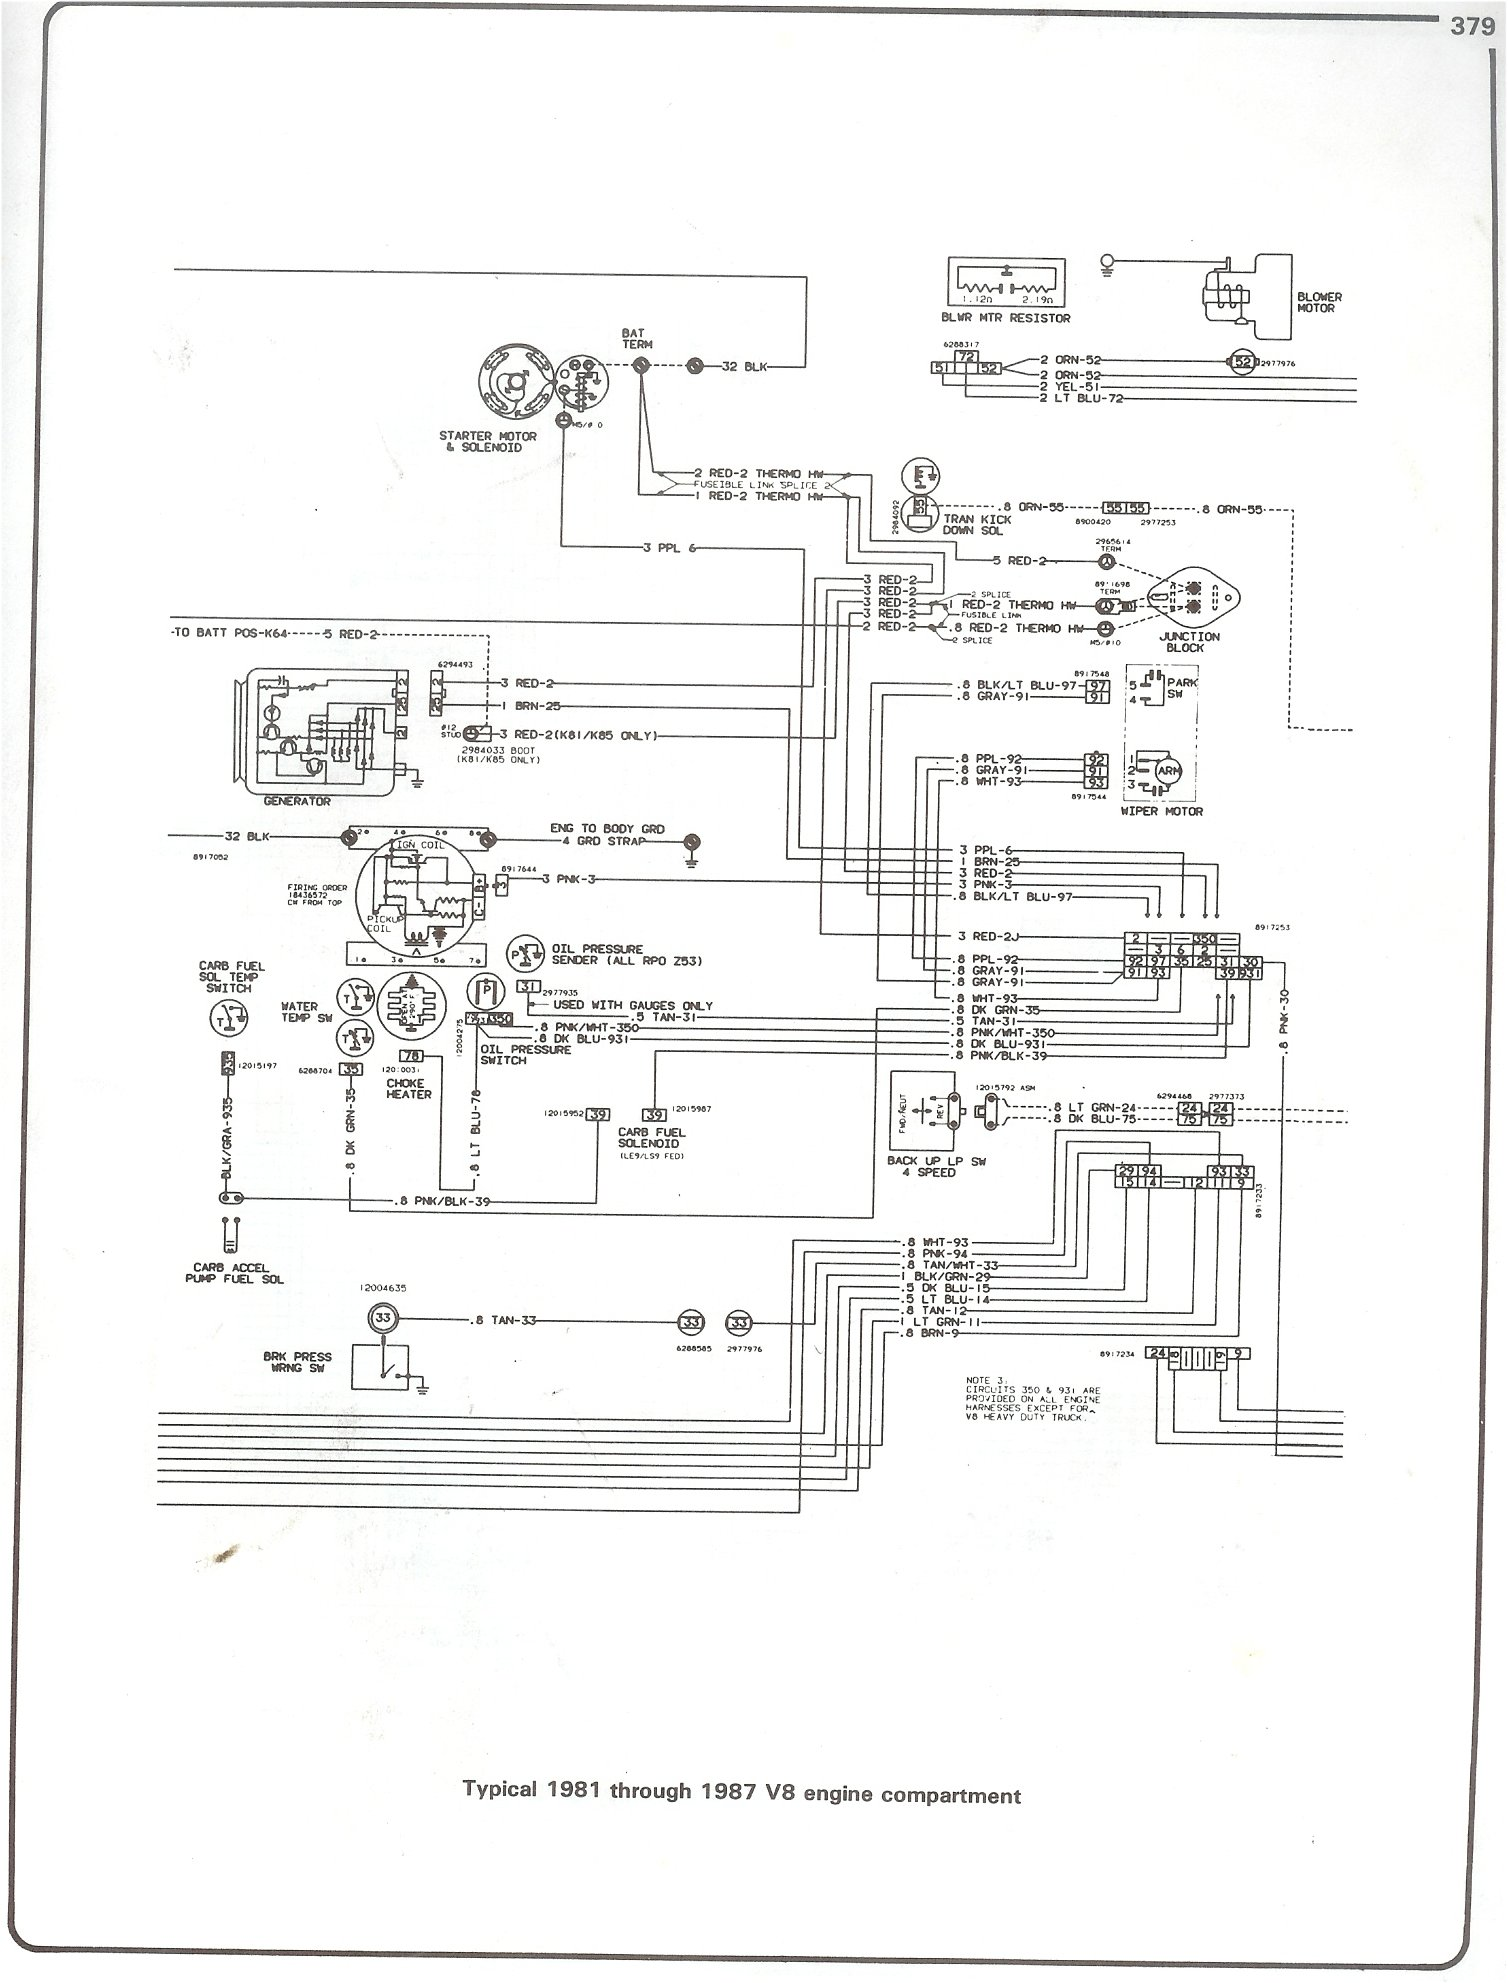 81 87_V8_engine complete 73 87 wiring diagrams 1982 chevy truck fuse box diagram at gsmx.co